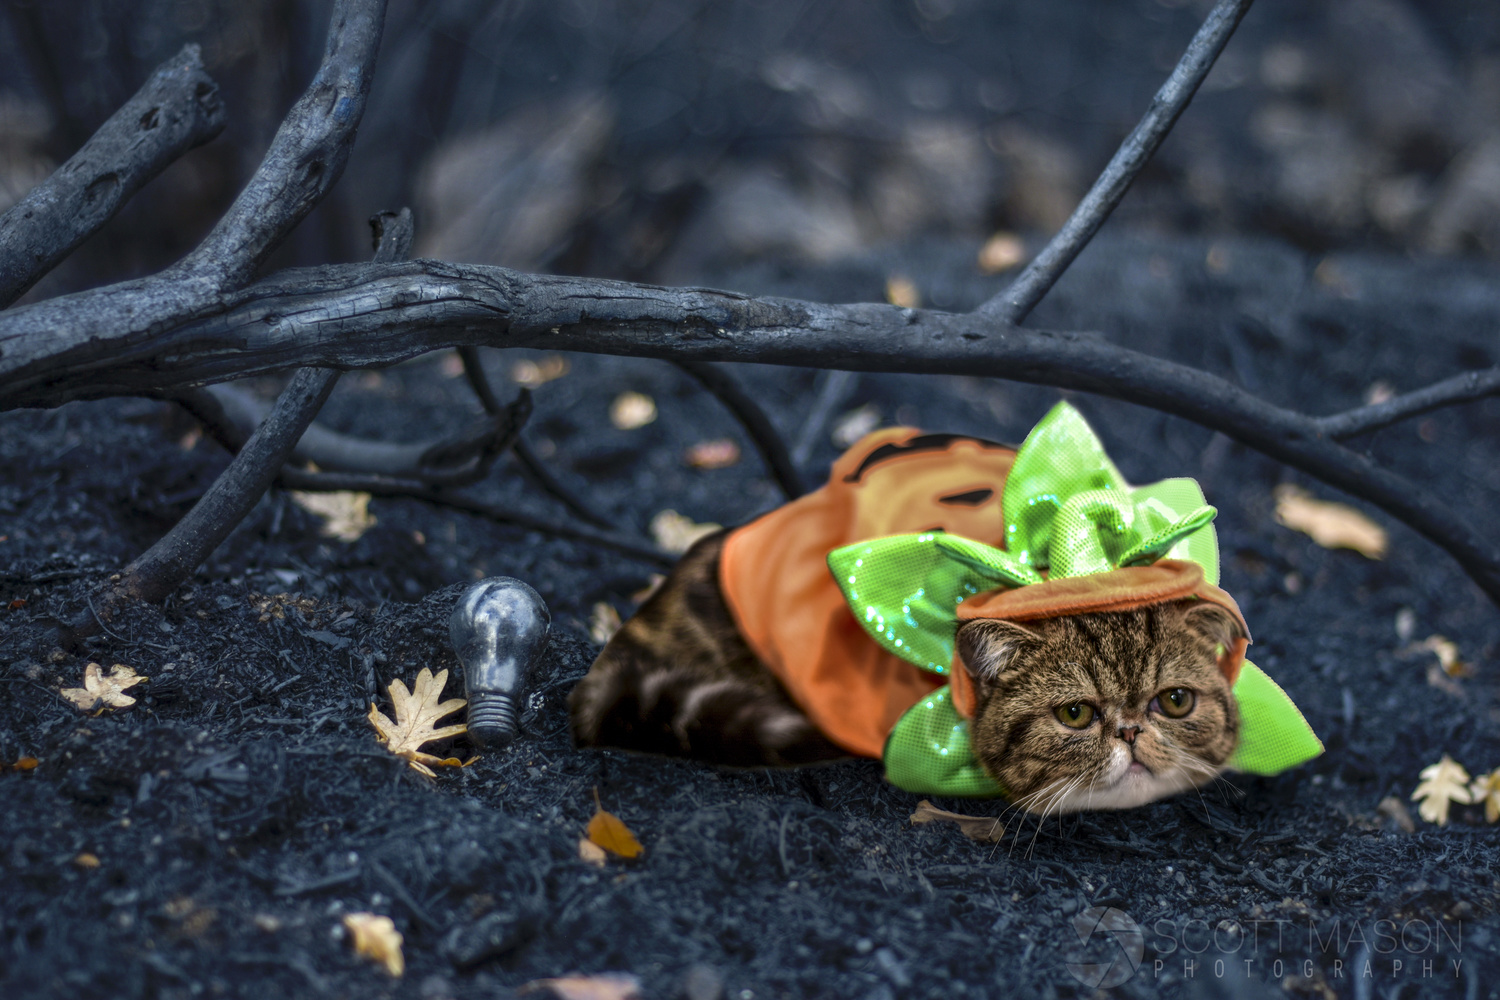 a cat with a pumpkin outfit on, huddled under a tree branch